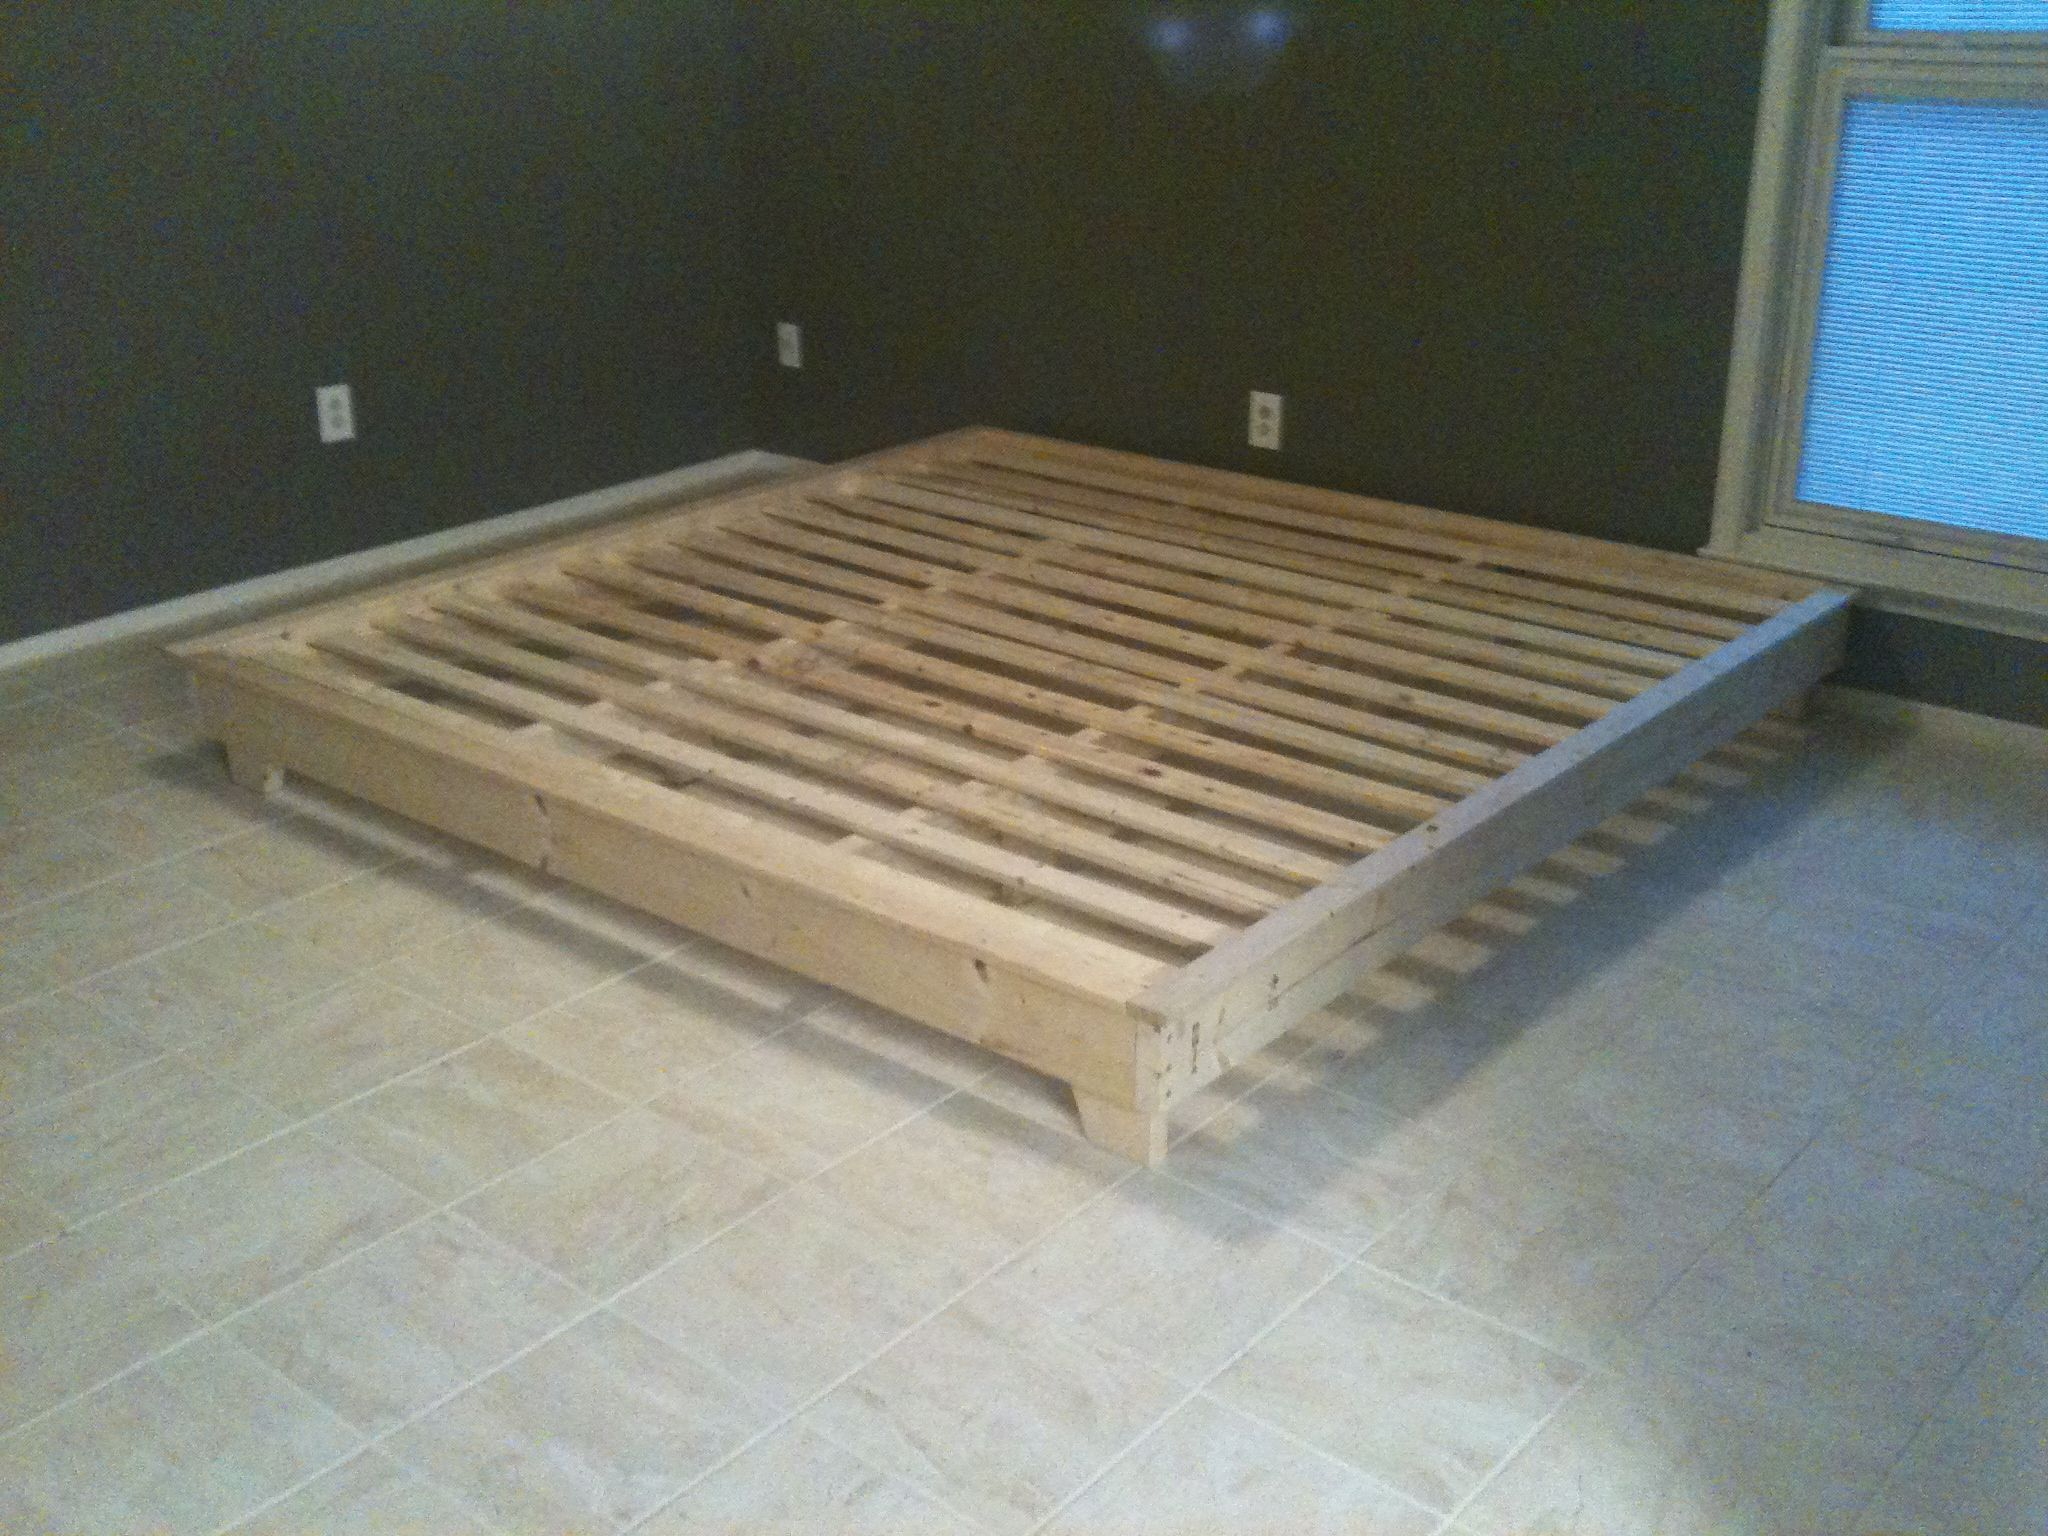 Diy king bed frame plans - Do It Yourself Build A Platform Bedking